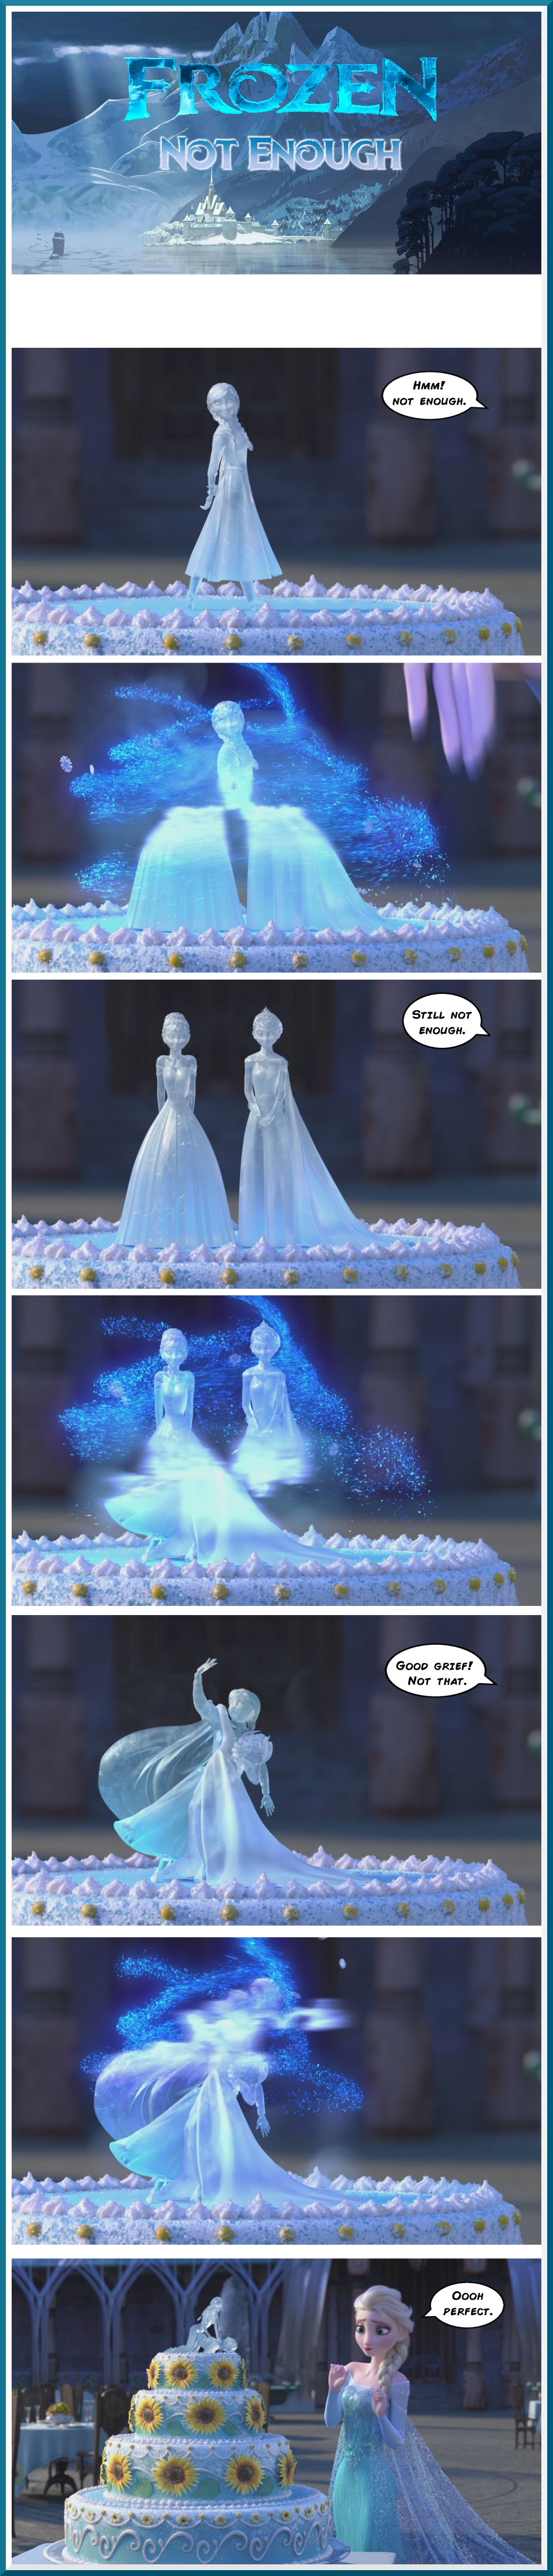 Disney frozen rule 34 fucks scene